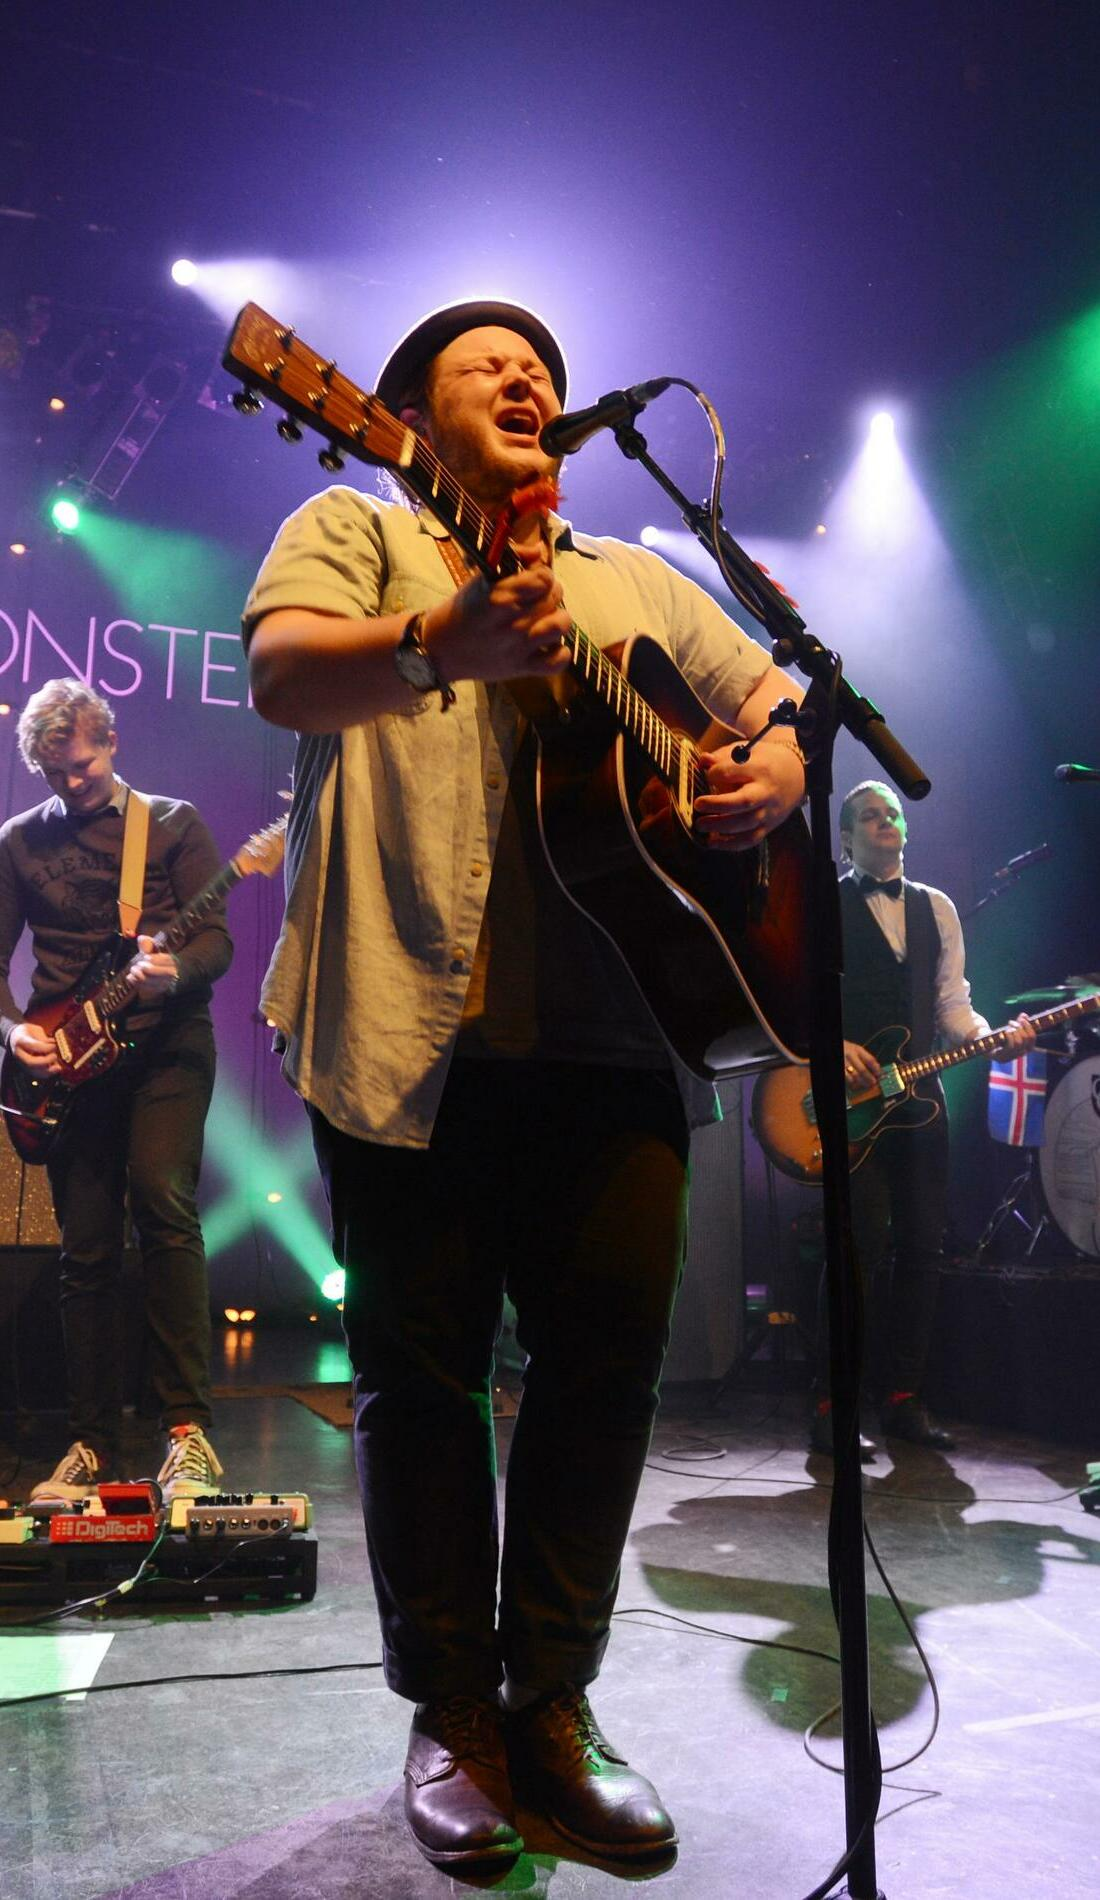 A Of Monsters And Men live event